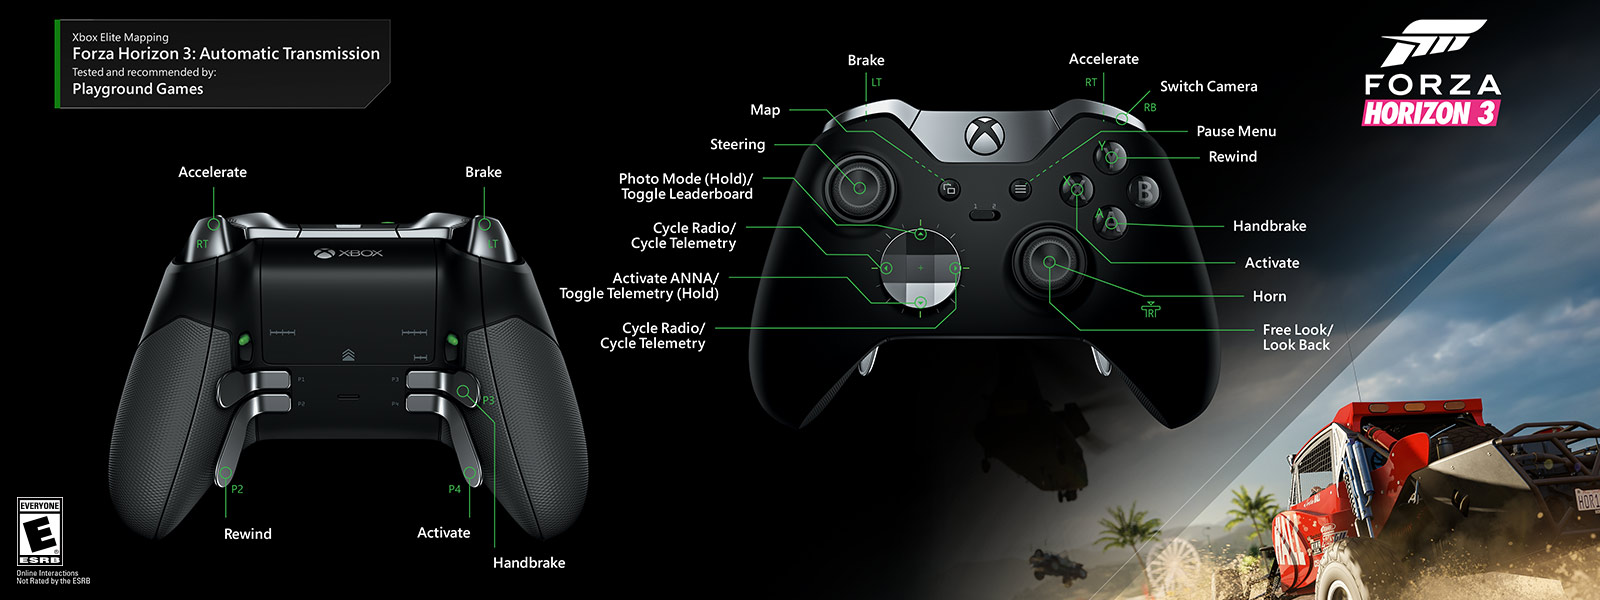 Xbox Elite Wireless Controller One Circuit Diagram 360 Forza Horizon 3 Automatic Transmission Mapping